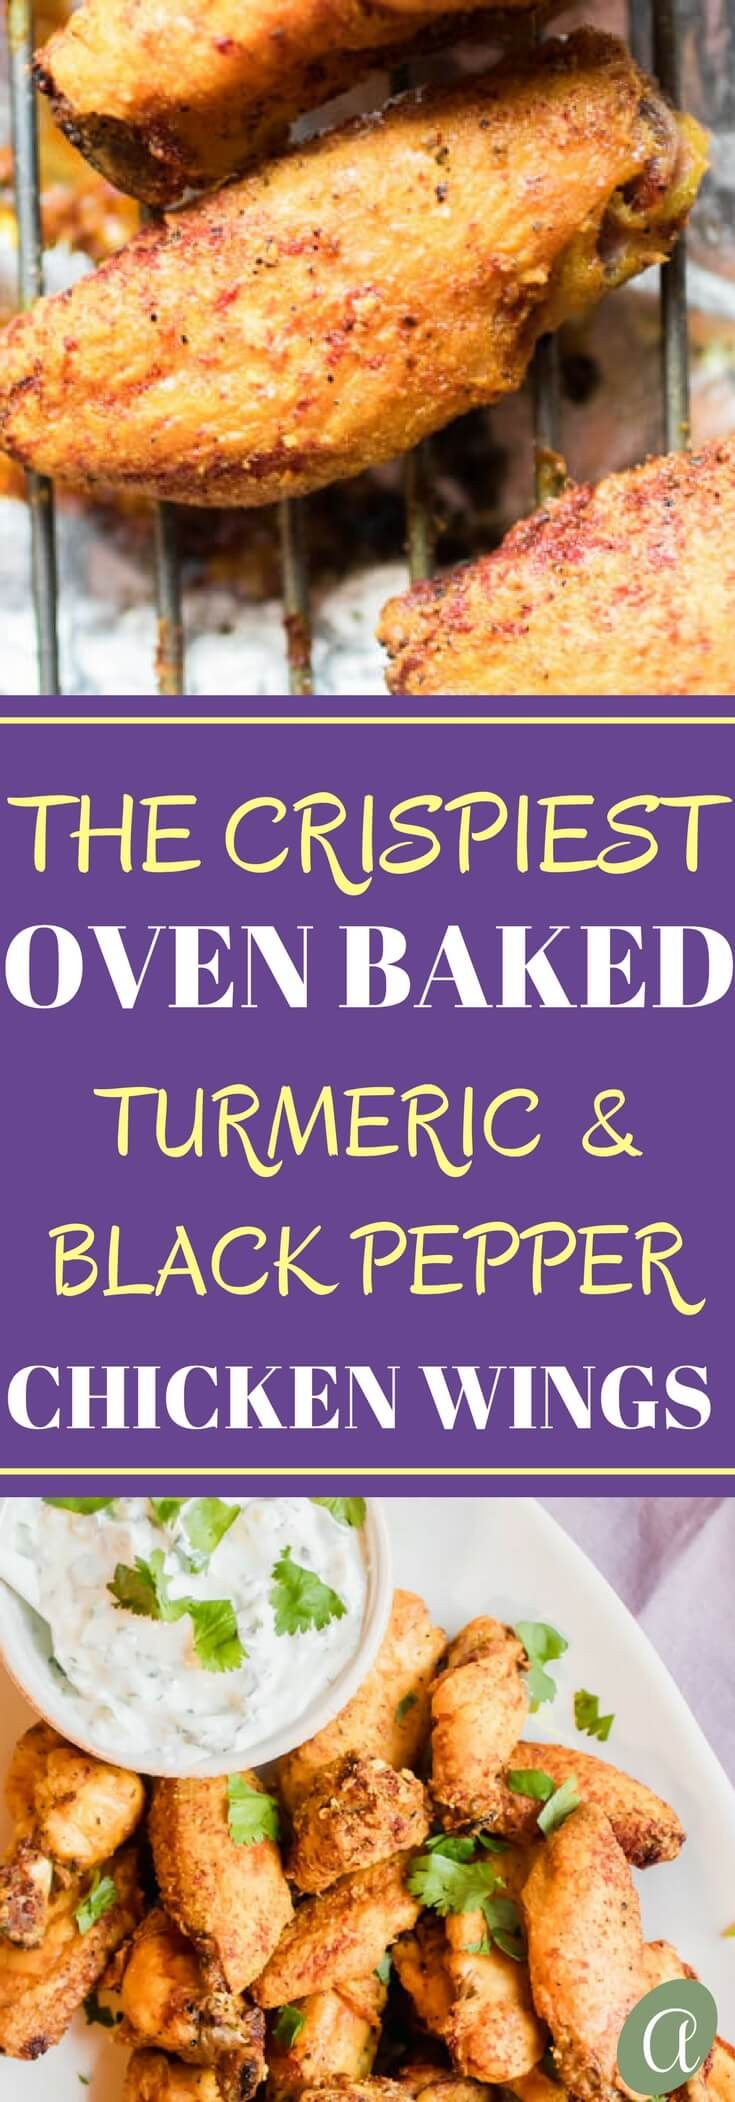 The crispiest oven baked healthy chicken wings with a turmeric black pepper spice rub!t Served with a tangy yogurt dipping sauce. You won't believe how good this recipe is! via @abrapappa